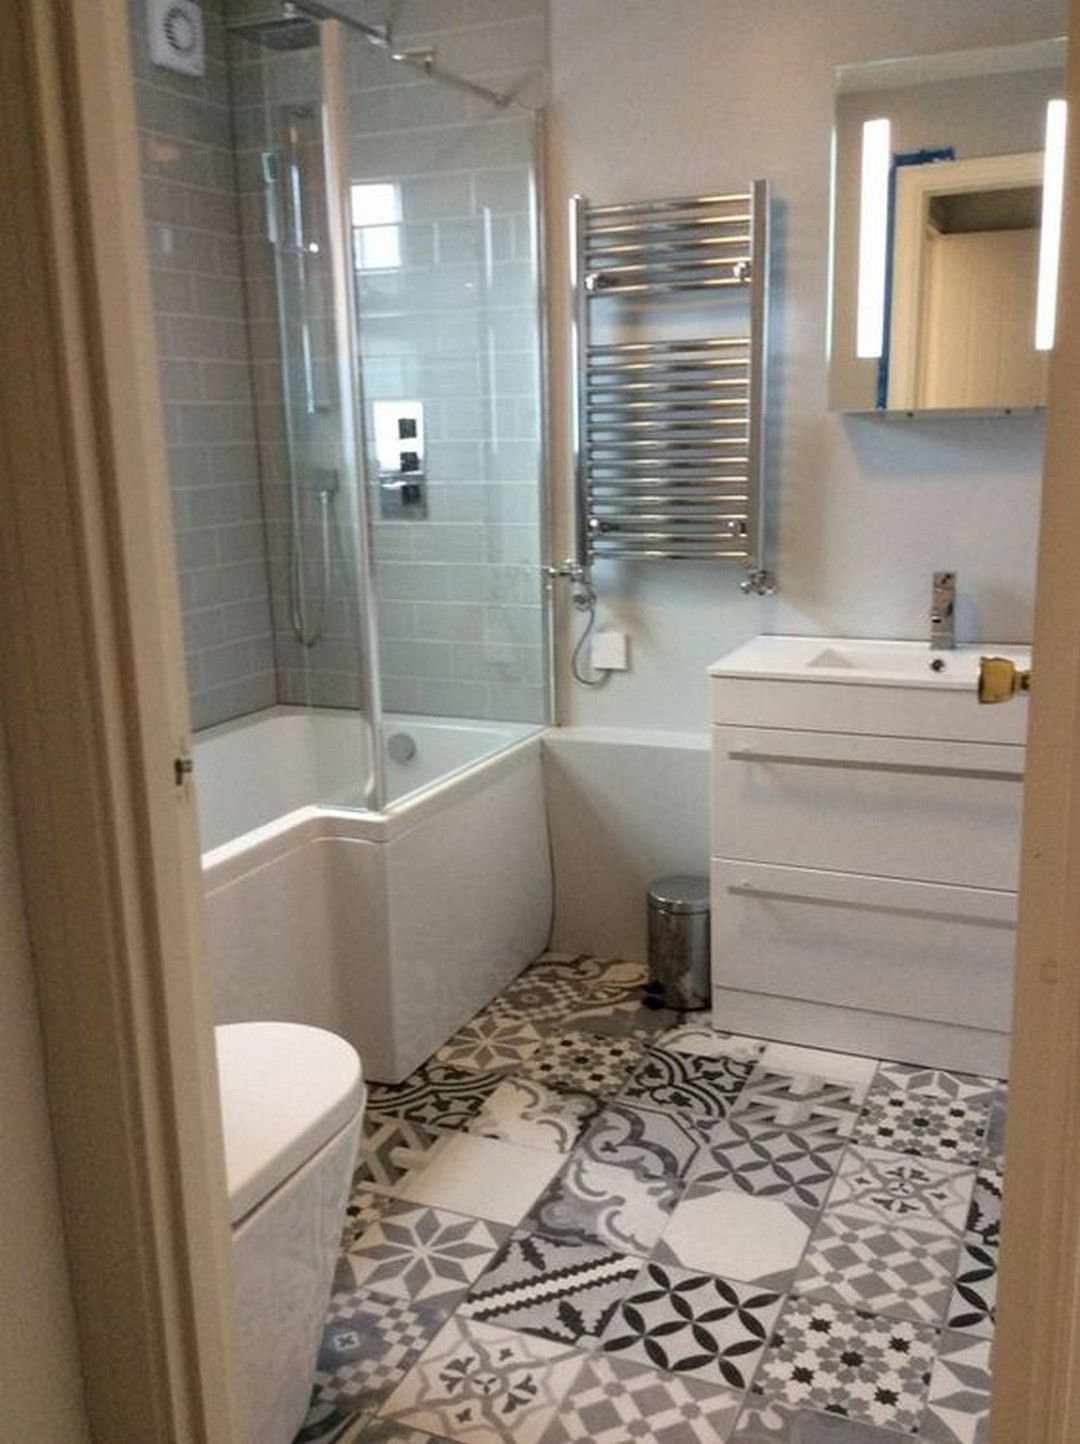 Style Up Your Ordinary Bathroom With These Spanish Tile Bathroom Ideas Https Www Goodnewsarchitecture Com Funky Bathroom Small Bathroom Tiles Small Bathroom